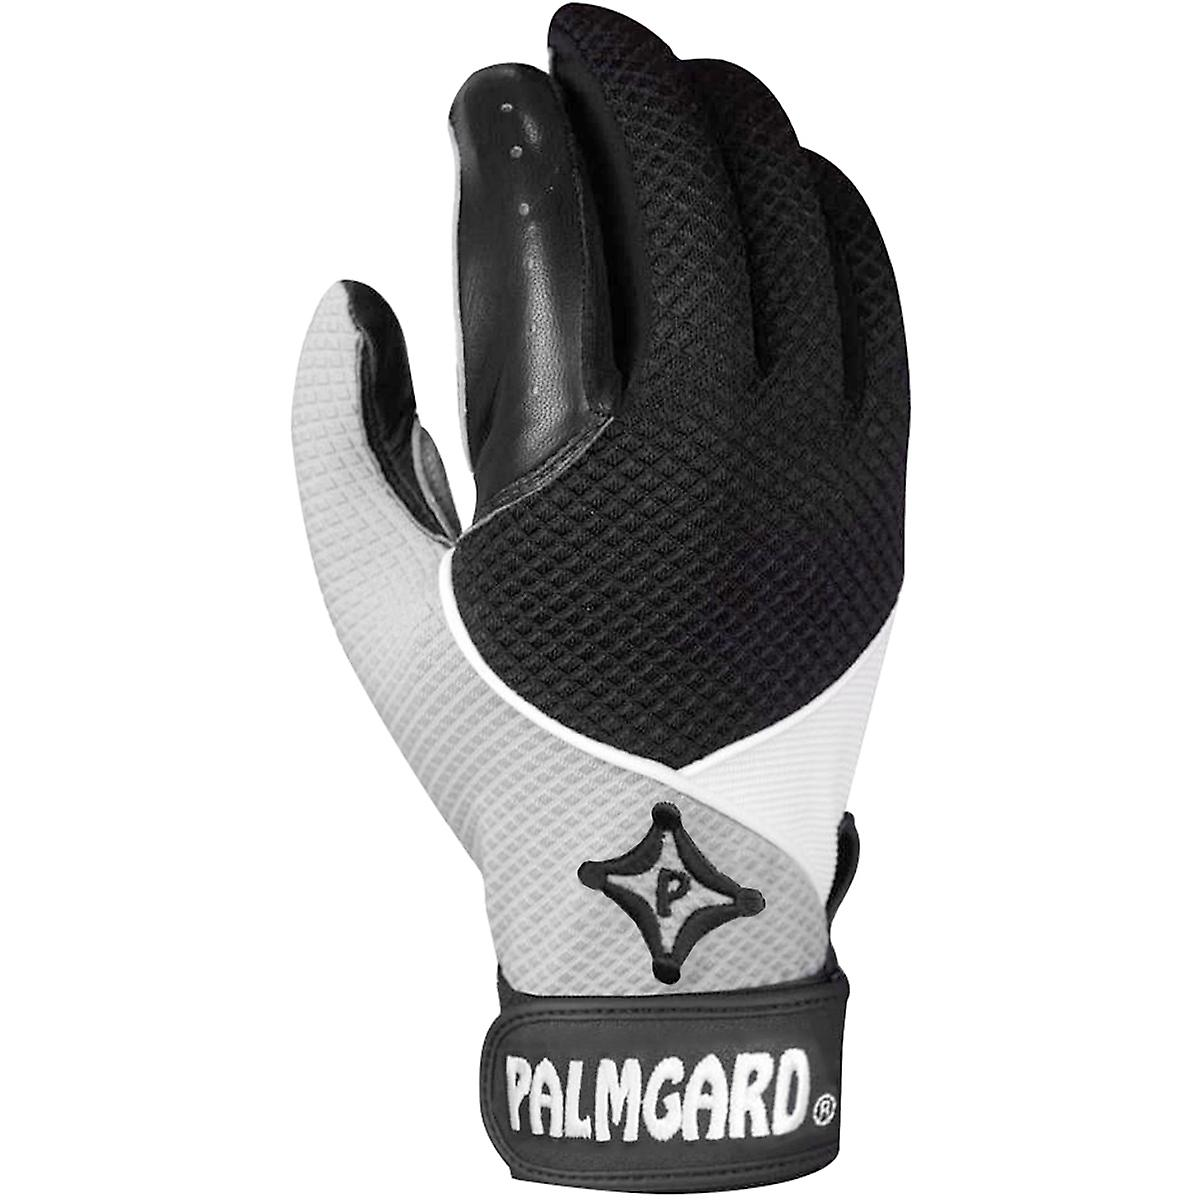 Palmgard Youth Right Hand Xtra Protective Inner Baseball and Softball Glove